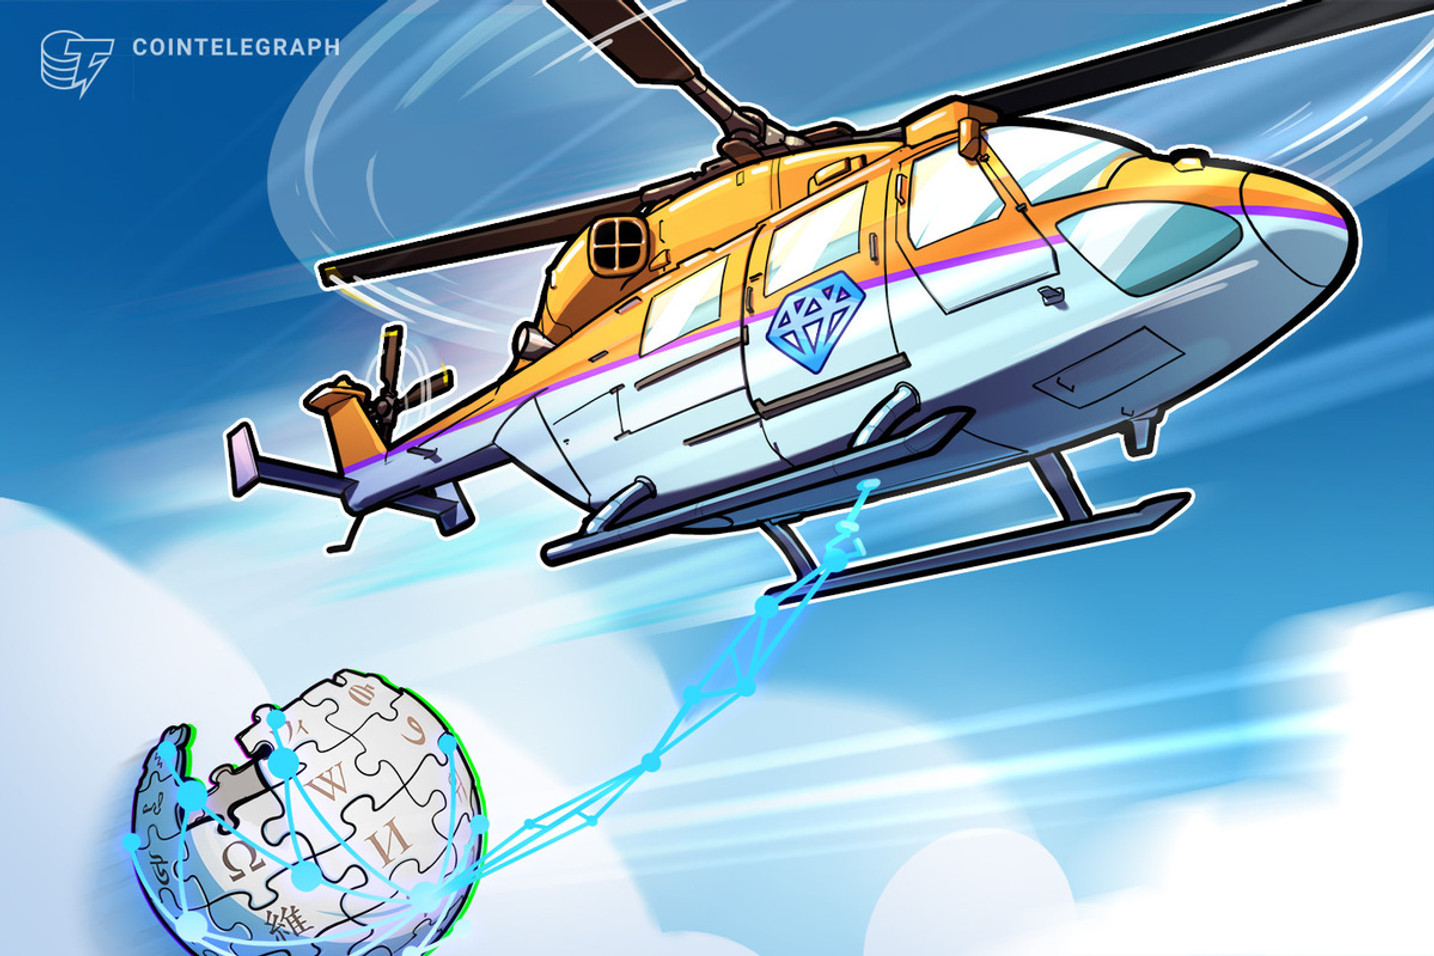 Decentralized blockchain project launches contest to build next Wikipedia